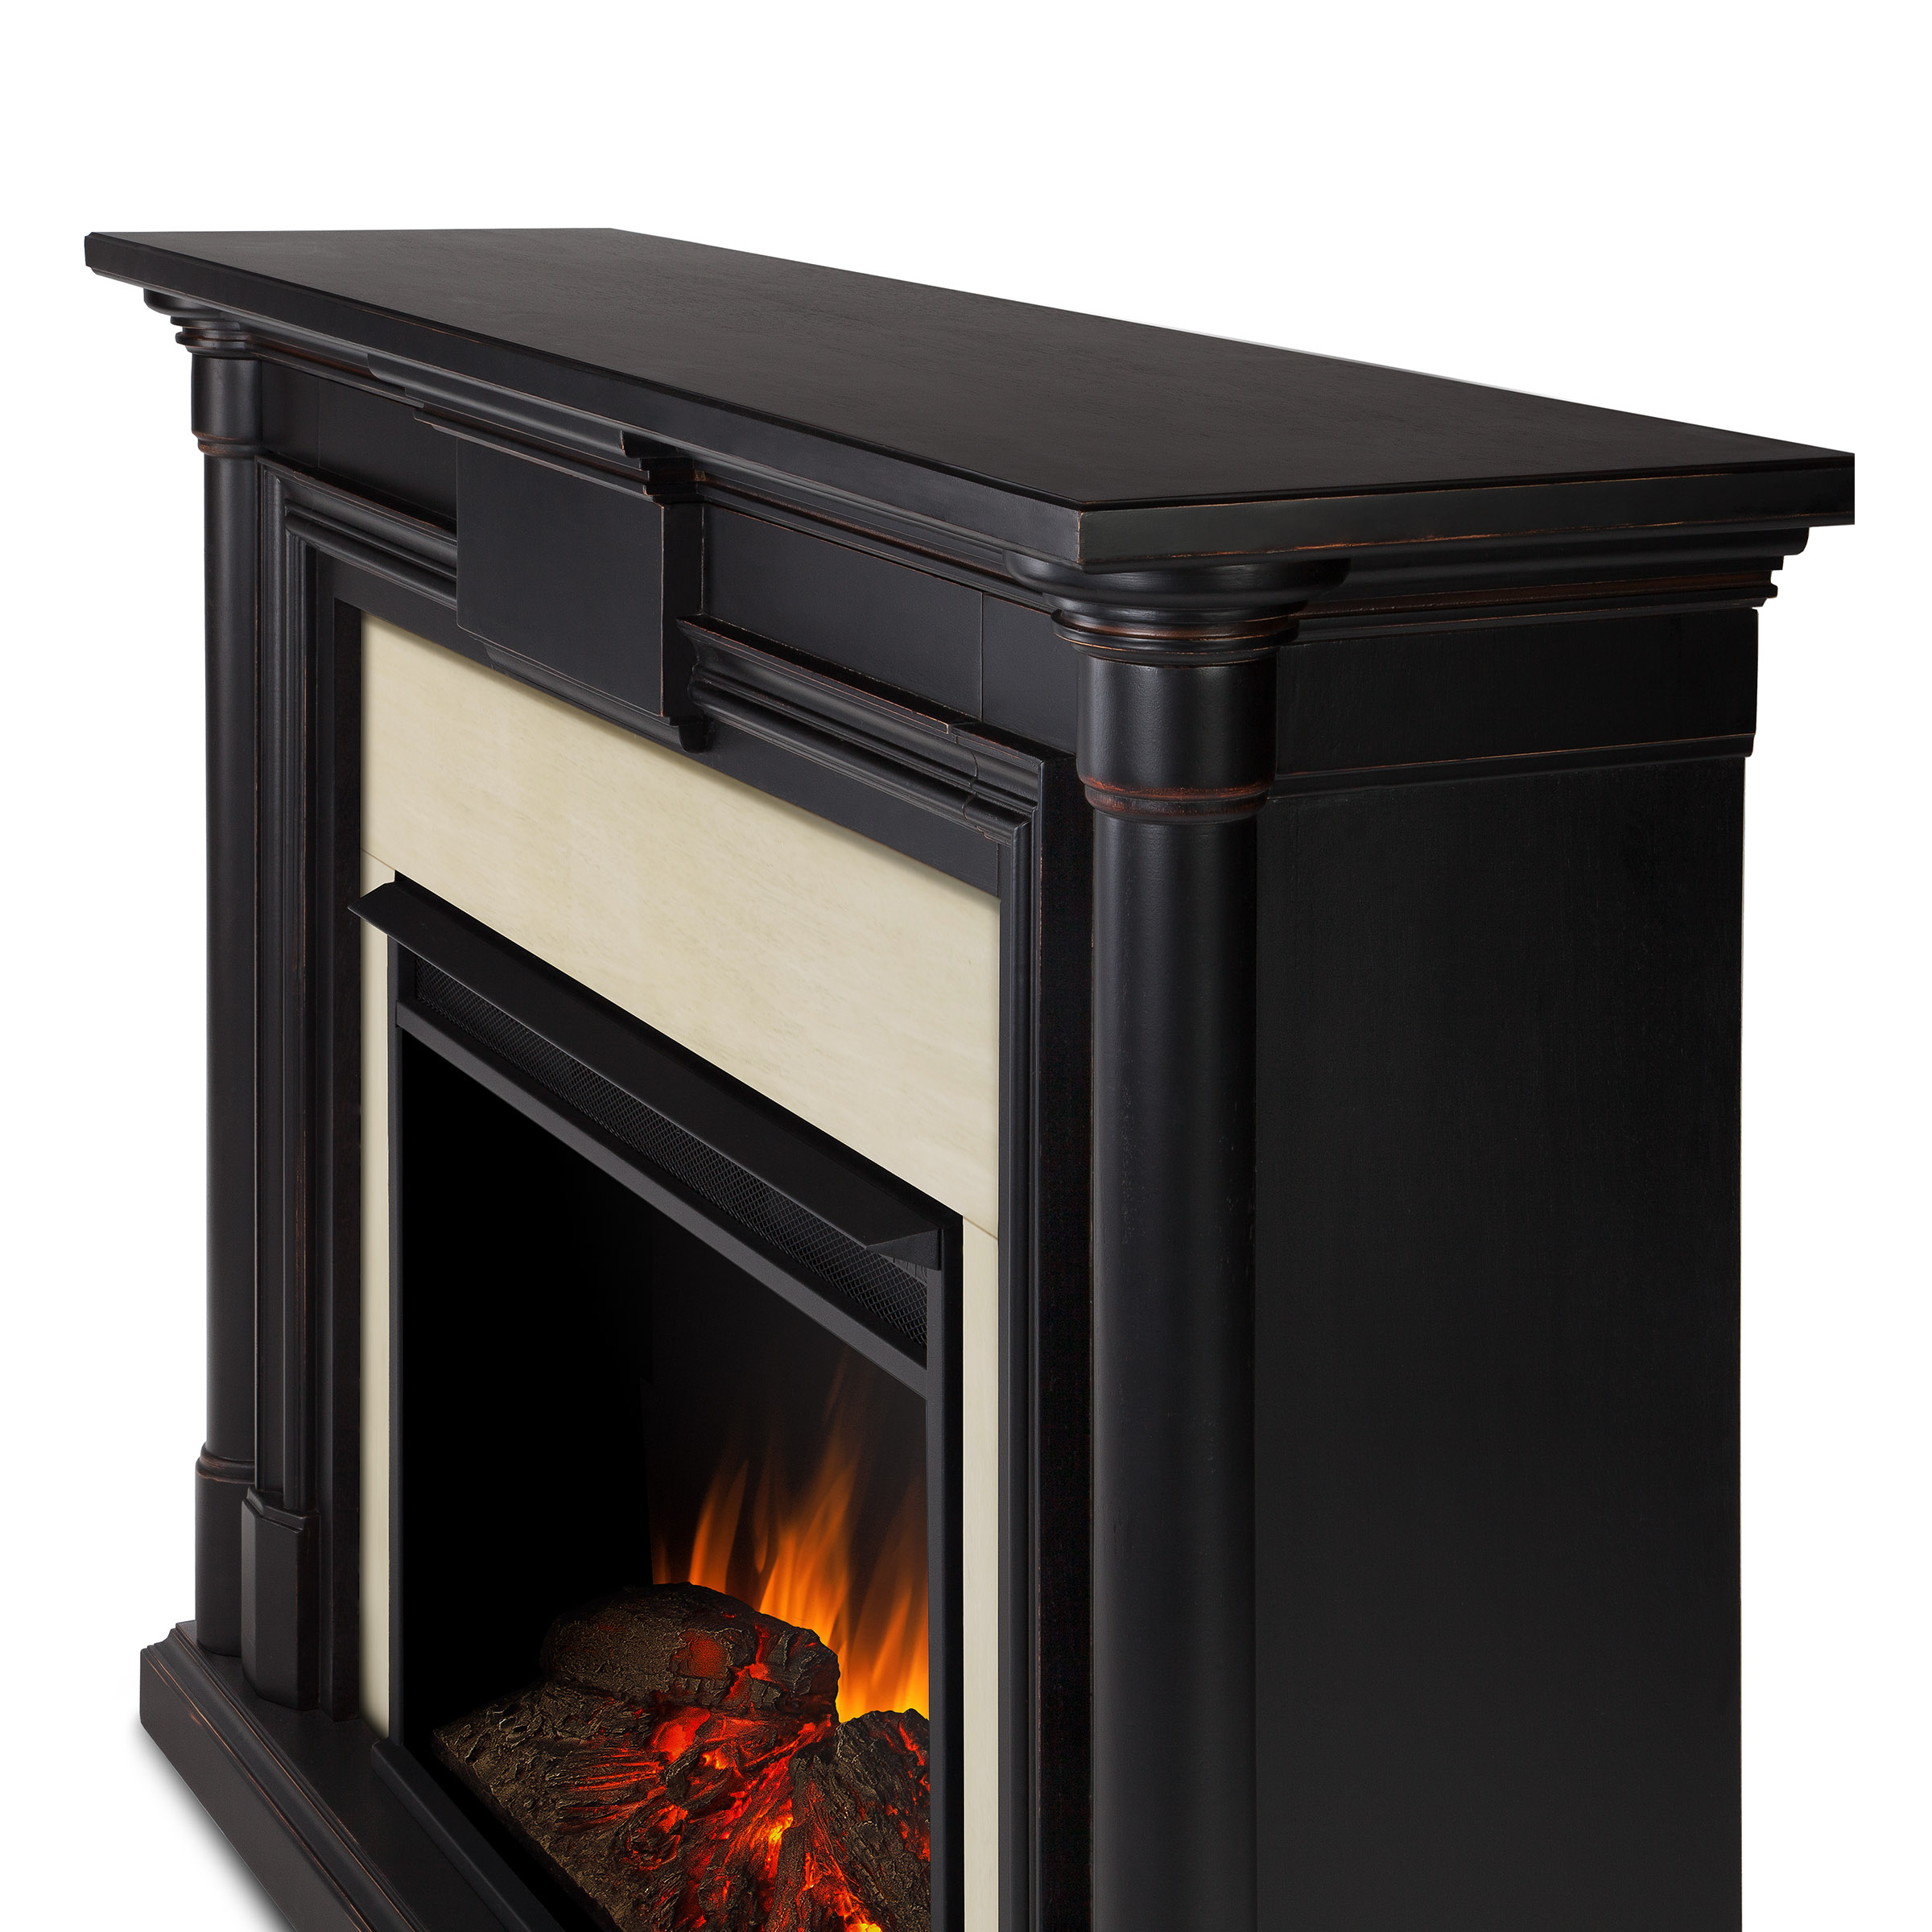 grand large features frequently advantages holbrook black questions electric fireplace regarding asked